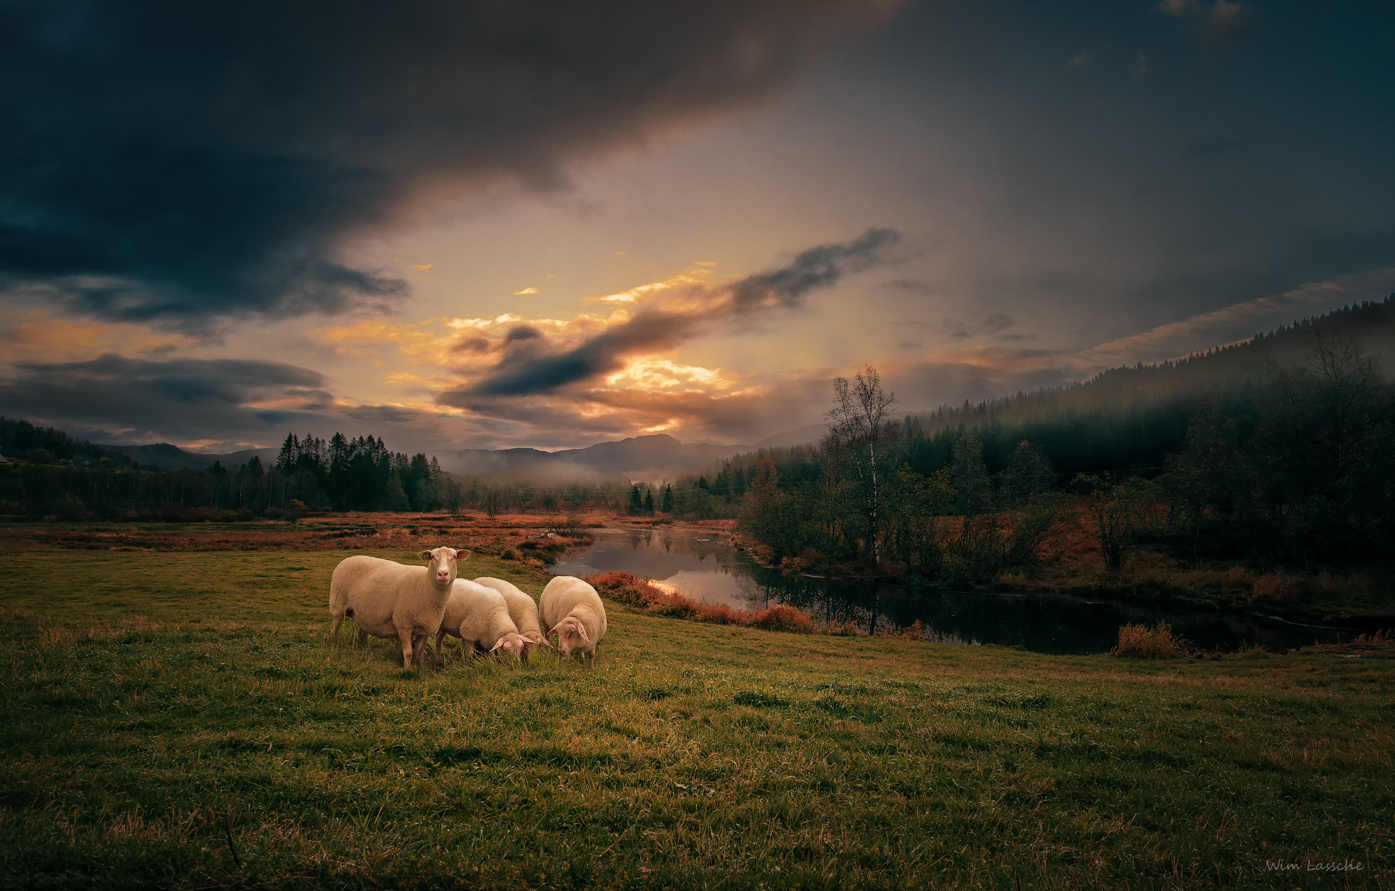 Sheep by Wim Lassche